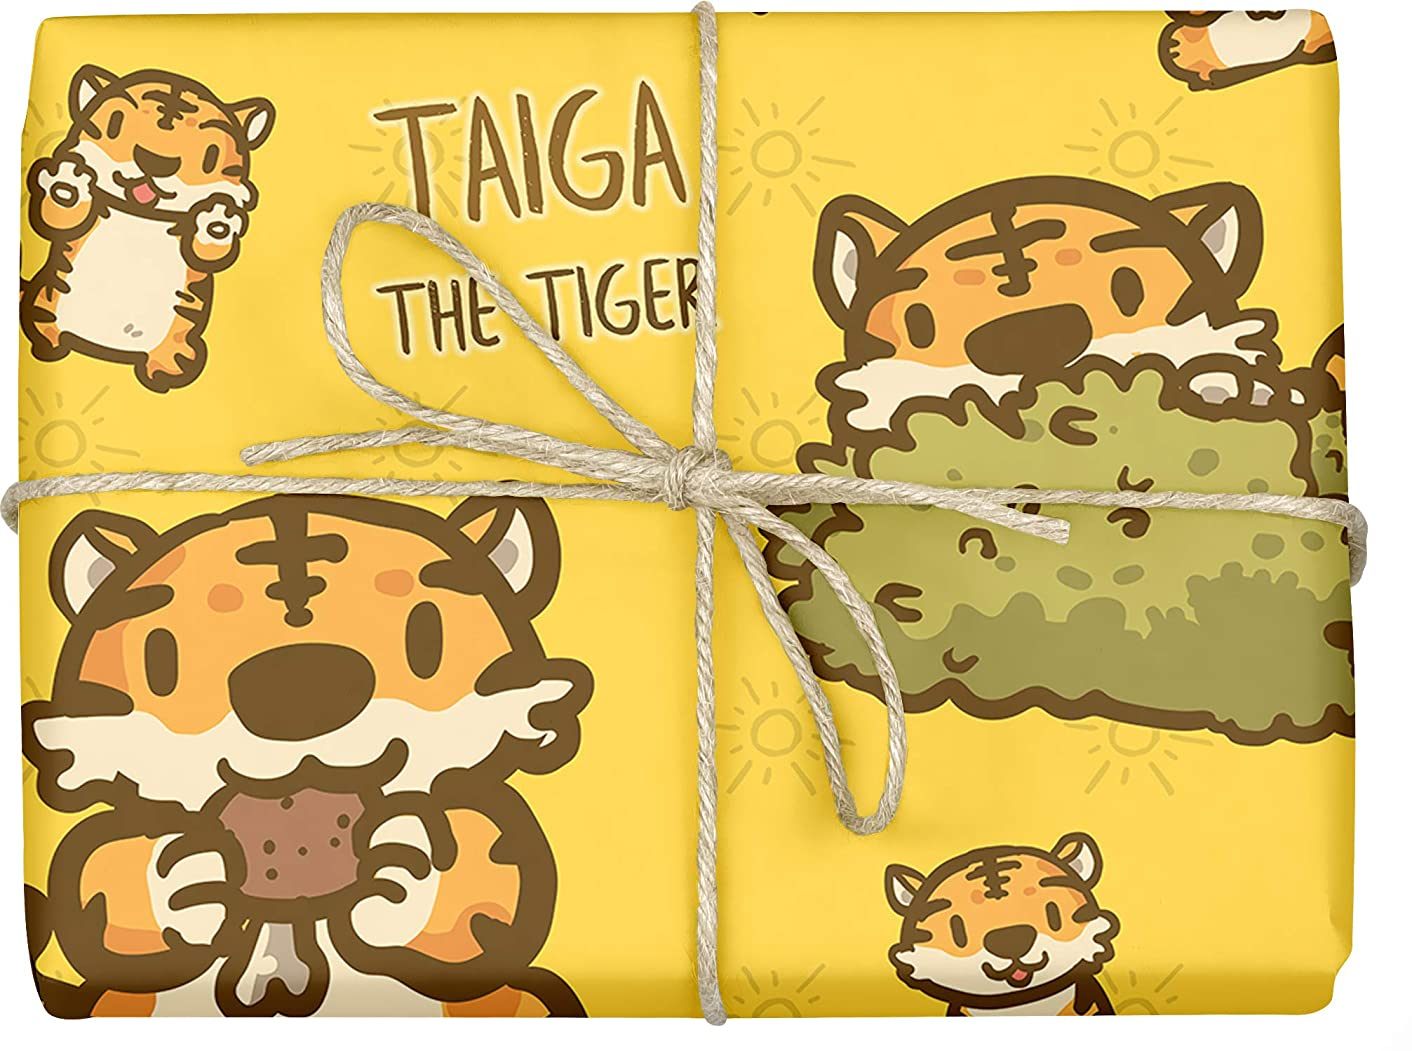 Taiga The Tiger - Design Gift Wrapping Paper | For Baby Showers, Kids Birthdays, Christmas Gifts | Unique Unisex Print | Wrap A Birthday Parcel & Present | 5 Sheets | 20 x 28 Inches